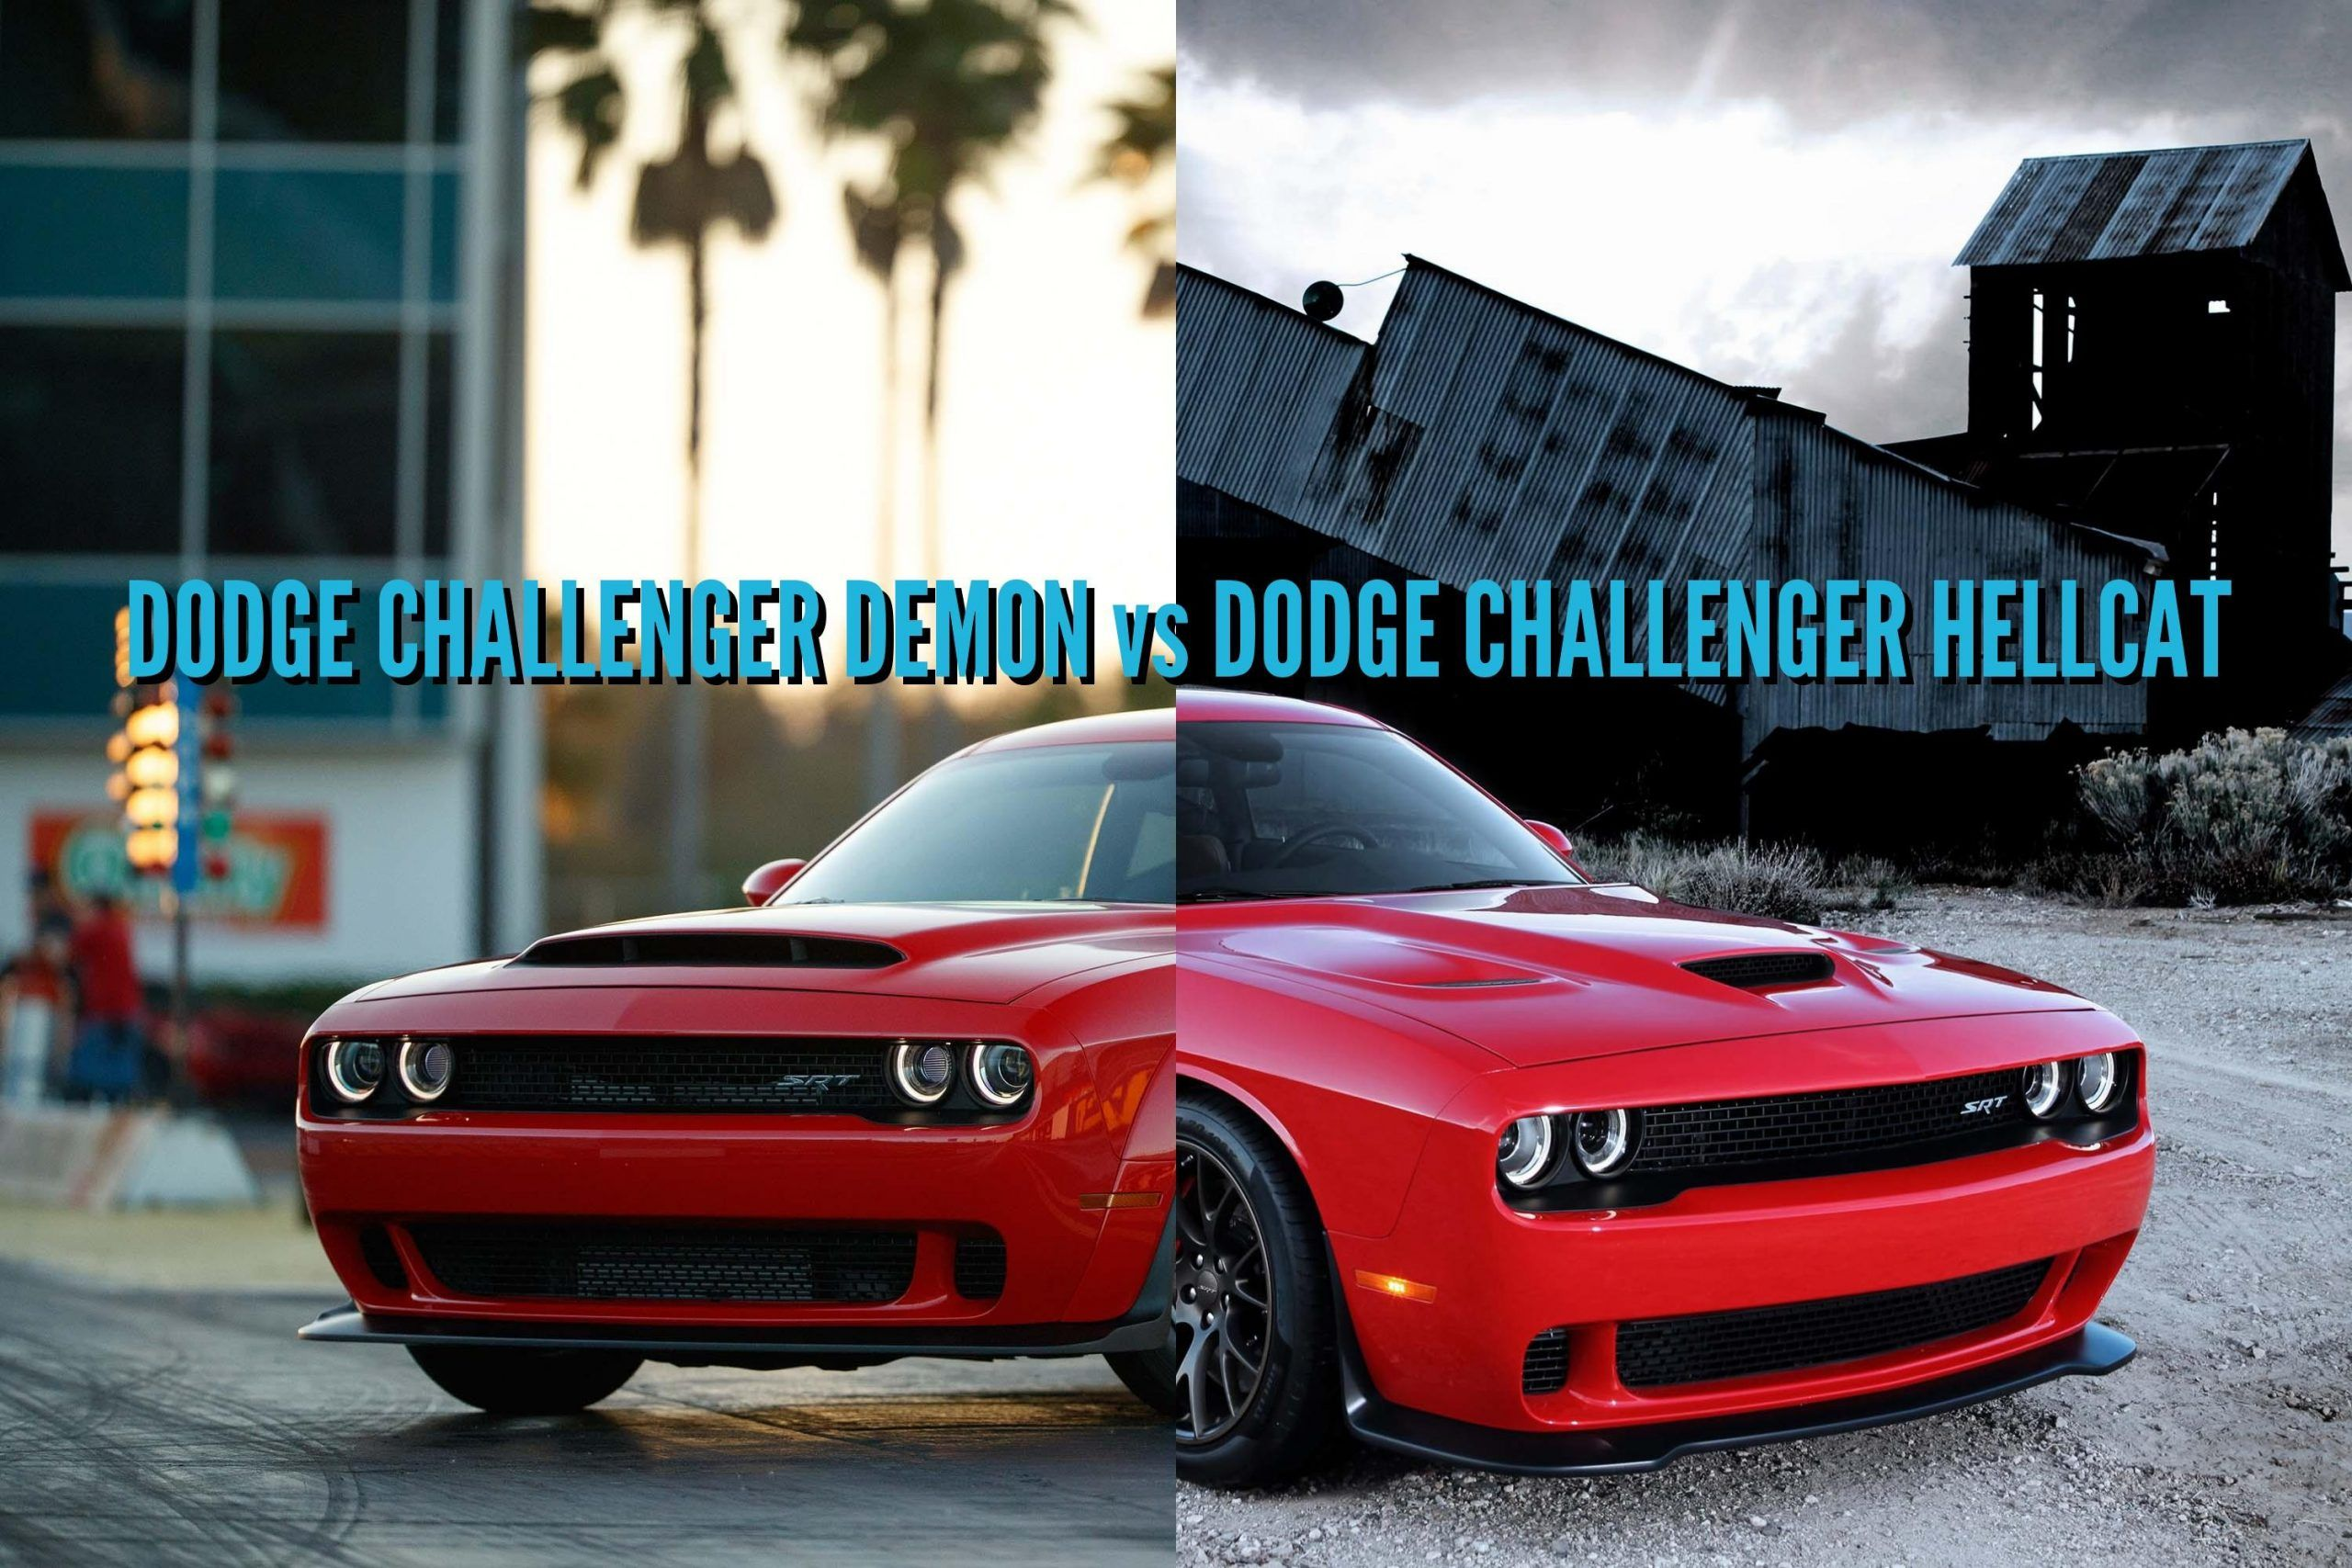 Dodge Demon And Hellcat 1 Unexpected Ways Dodge Demon And Hellcat Can Make Your Life Better In 2021 Hellcat Challenger Hellcat 2018 Dodge Challenger